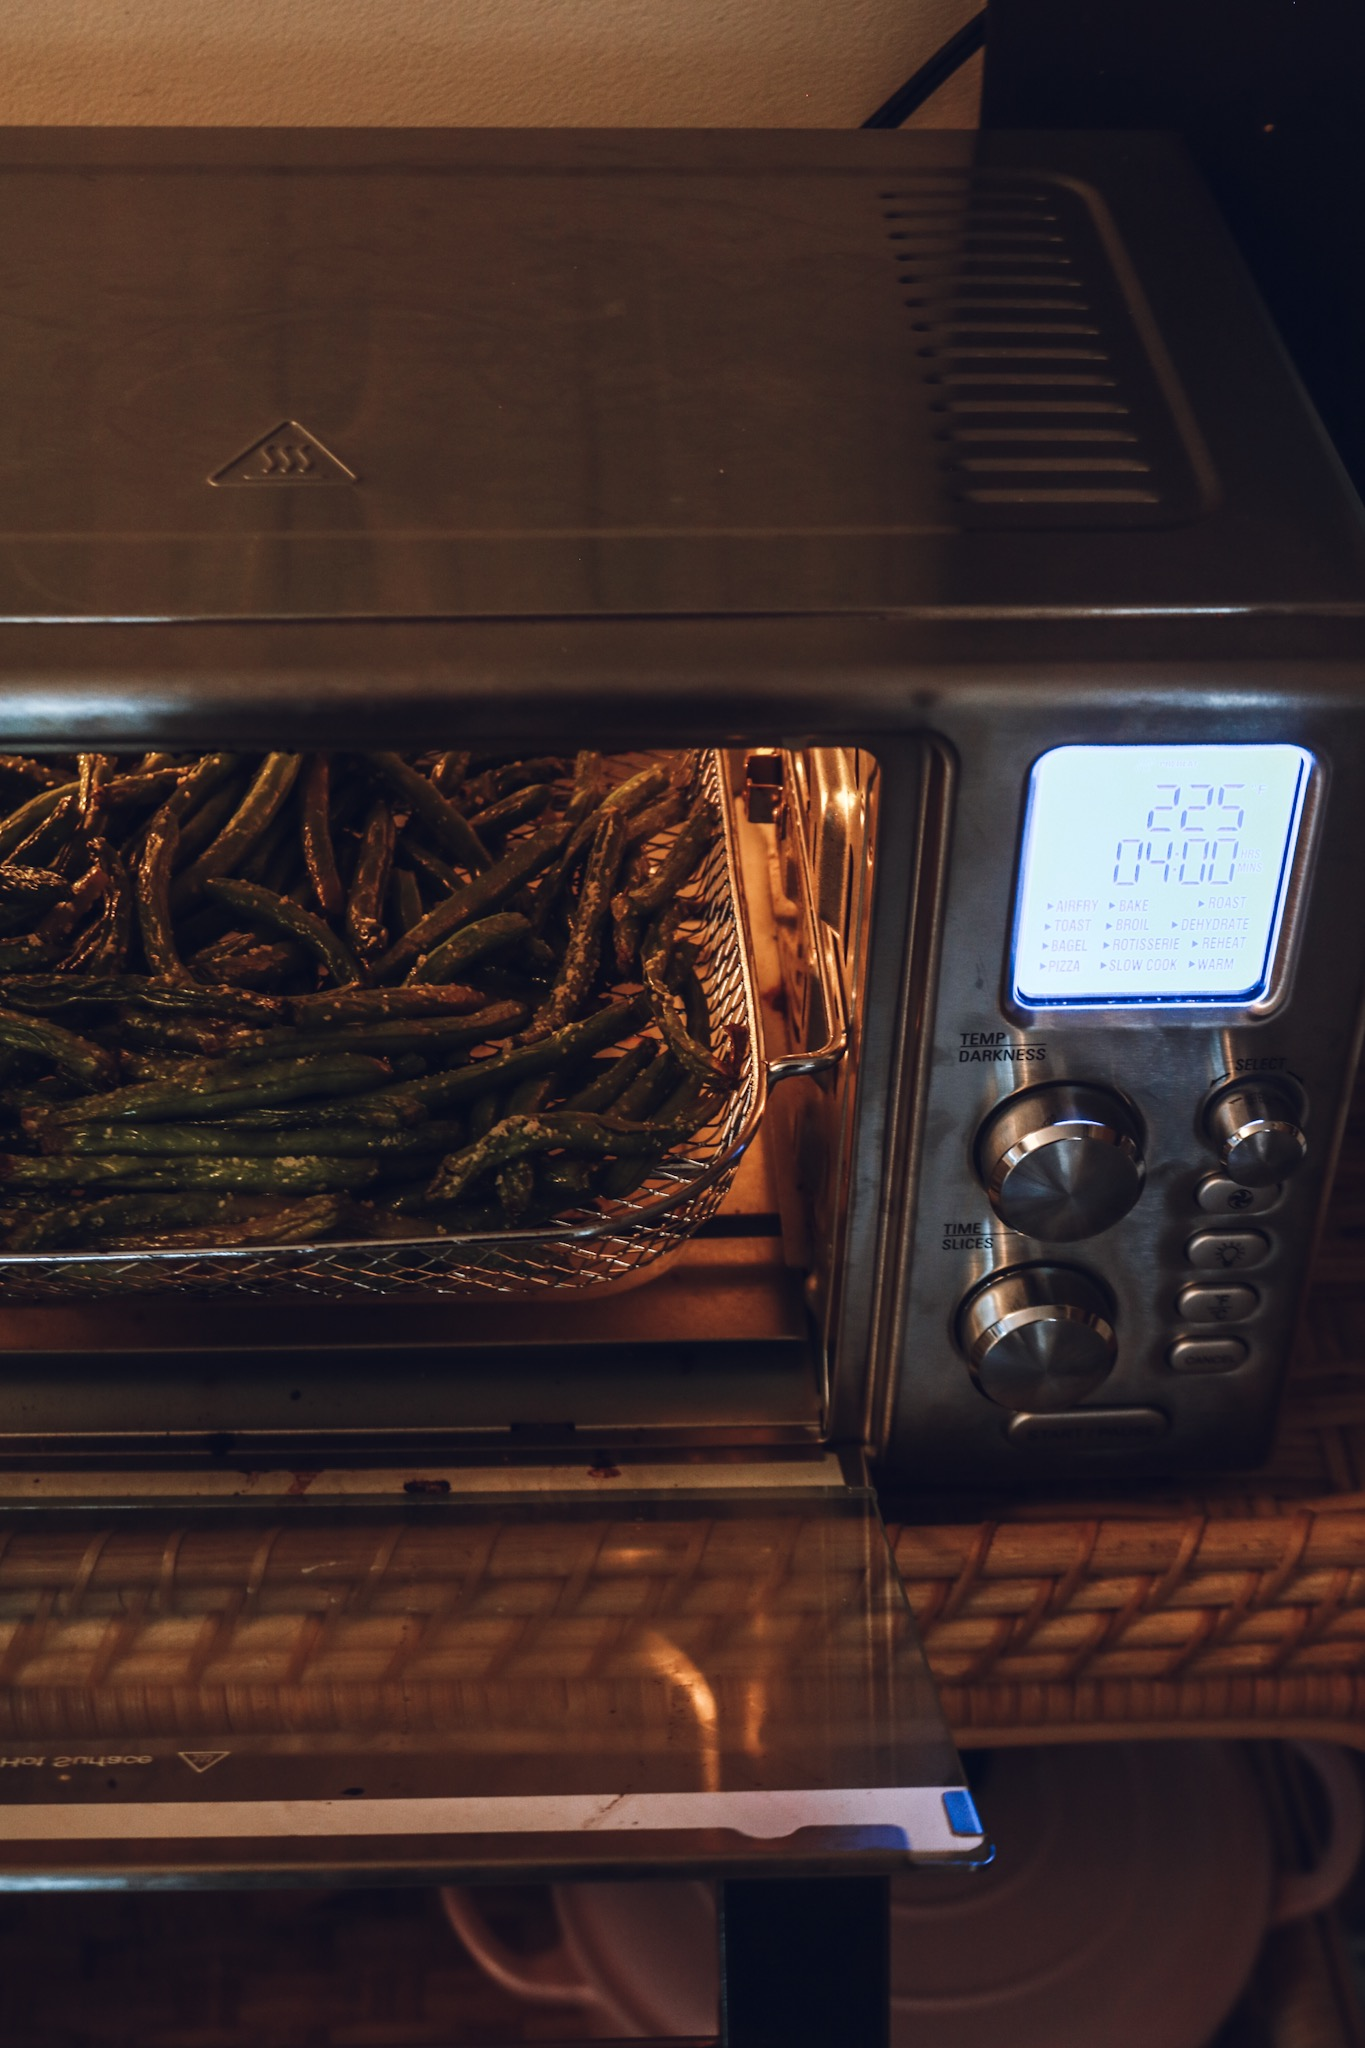 Complete Dinner in the Air Fryer